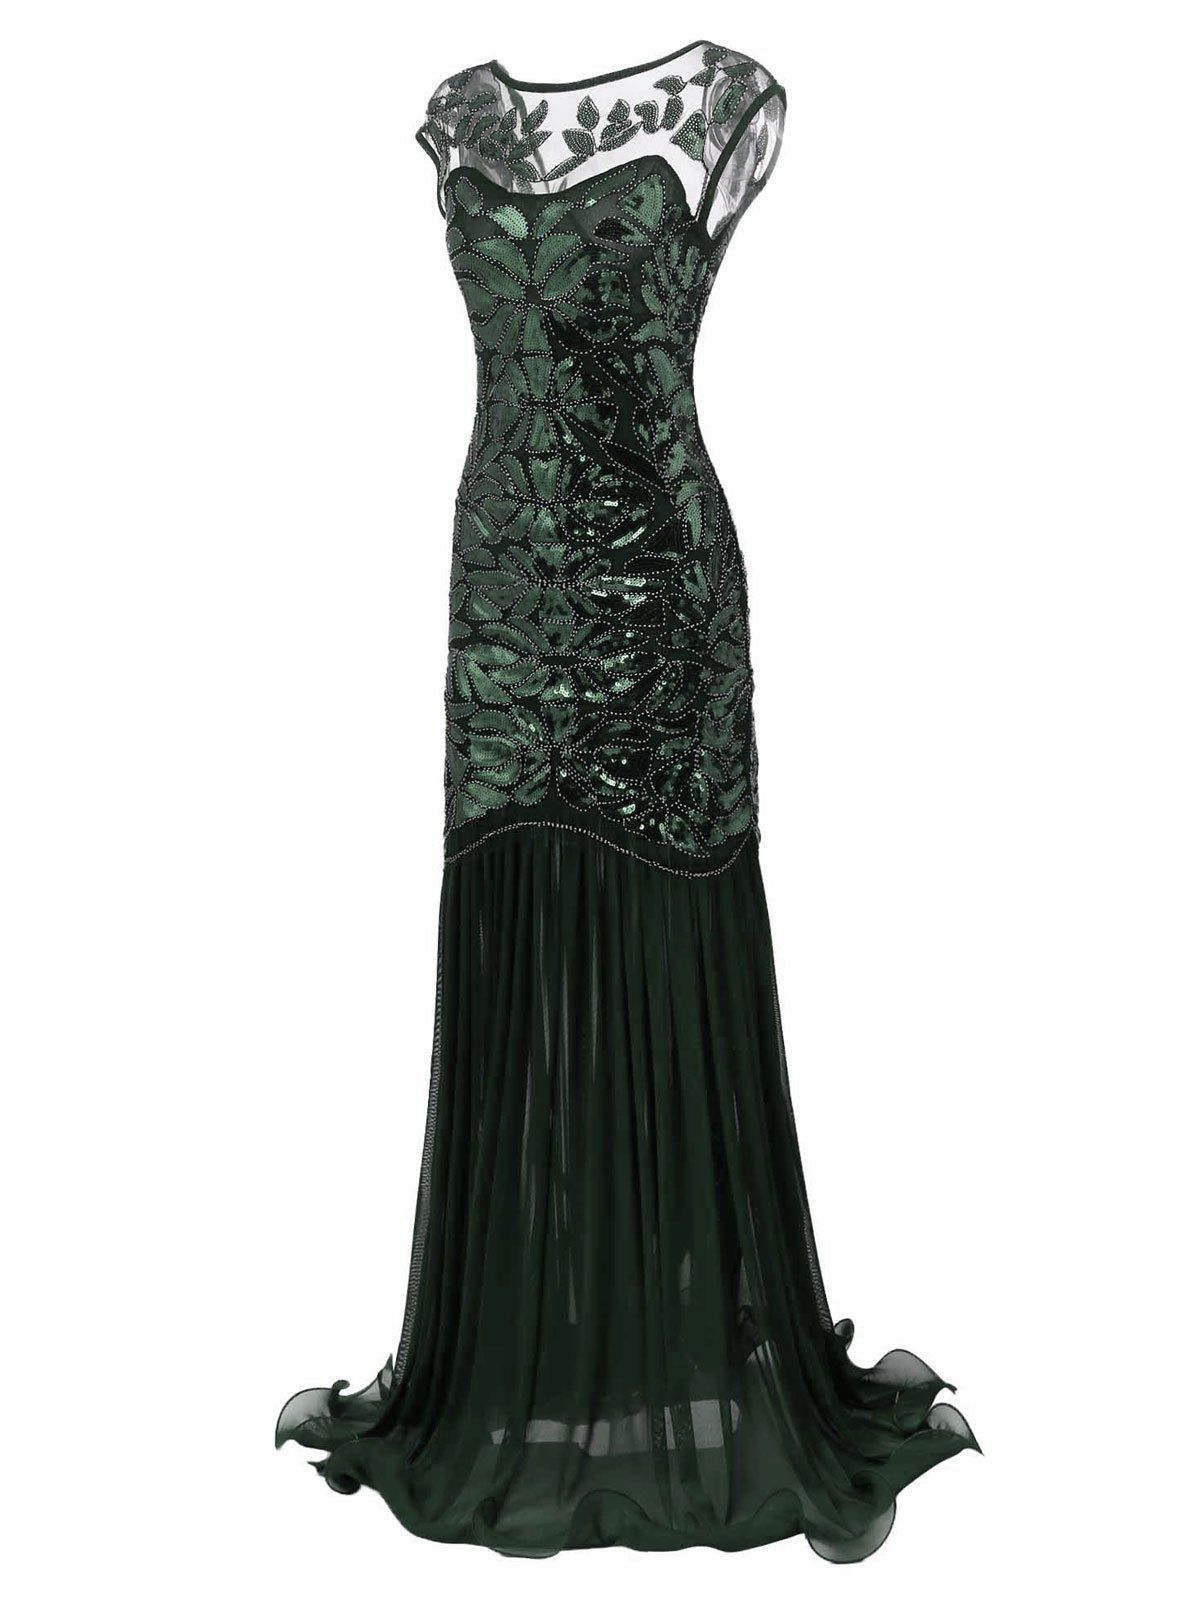 1619d34a Green 1920s Sequin Maxi Flapper Dress – Retro Stage - Chic Vintage Dresses  and Accessories